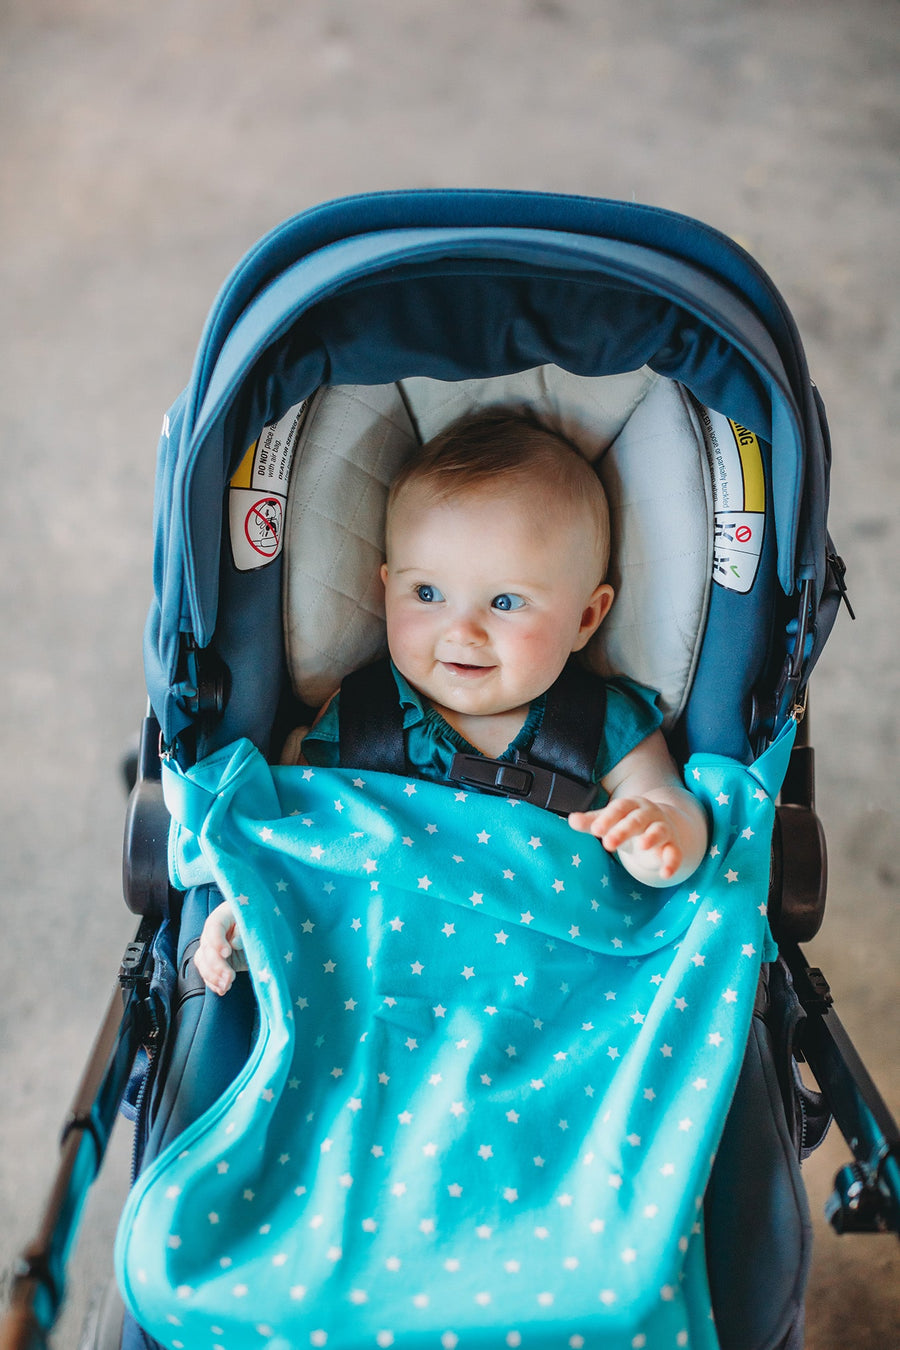 Outer space and blue stars baby infinity scarf style drool bib and travel stroller blanket with clips.